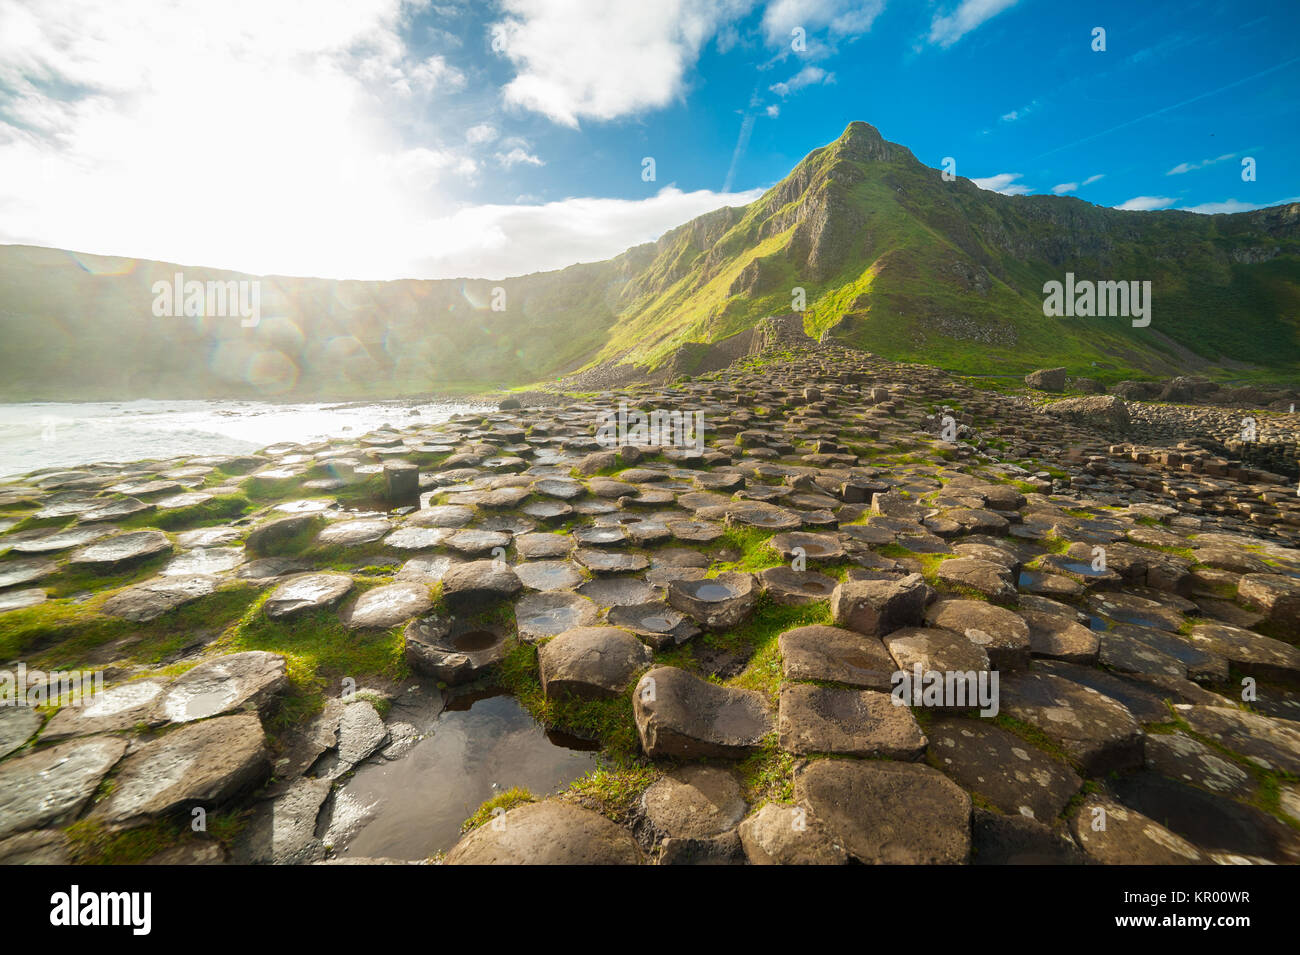 The Giant's Causeway at dawn on a sunny day with the famous basalt columns, the result of an ancient volcanic - Stock Image